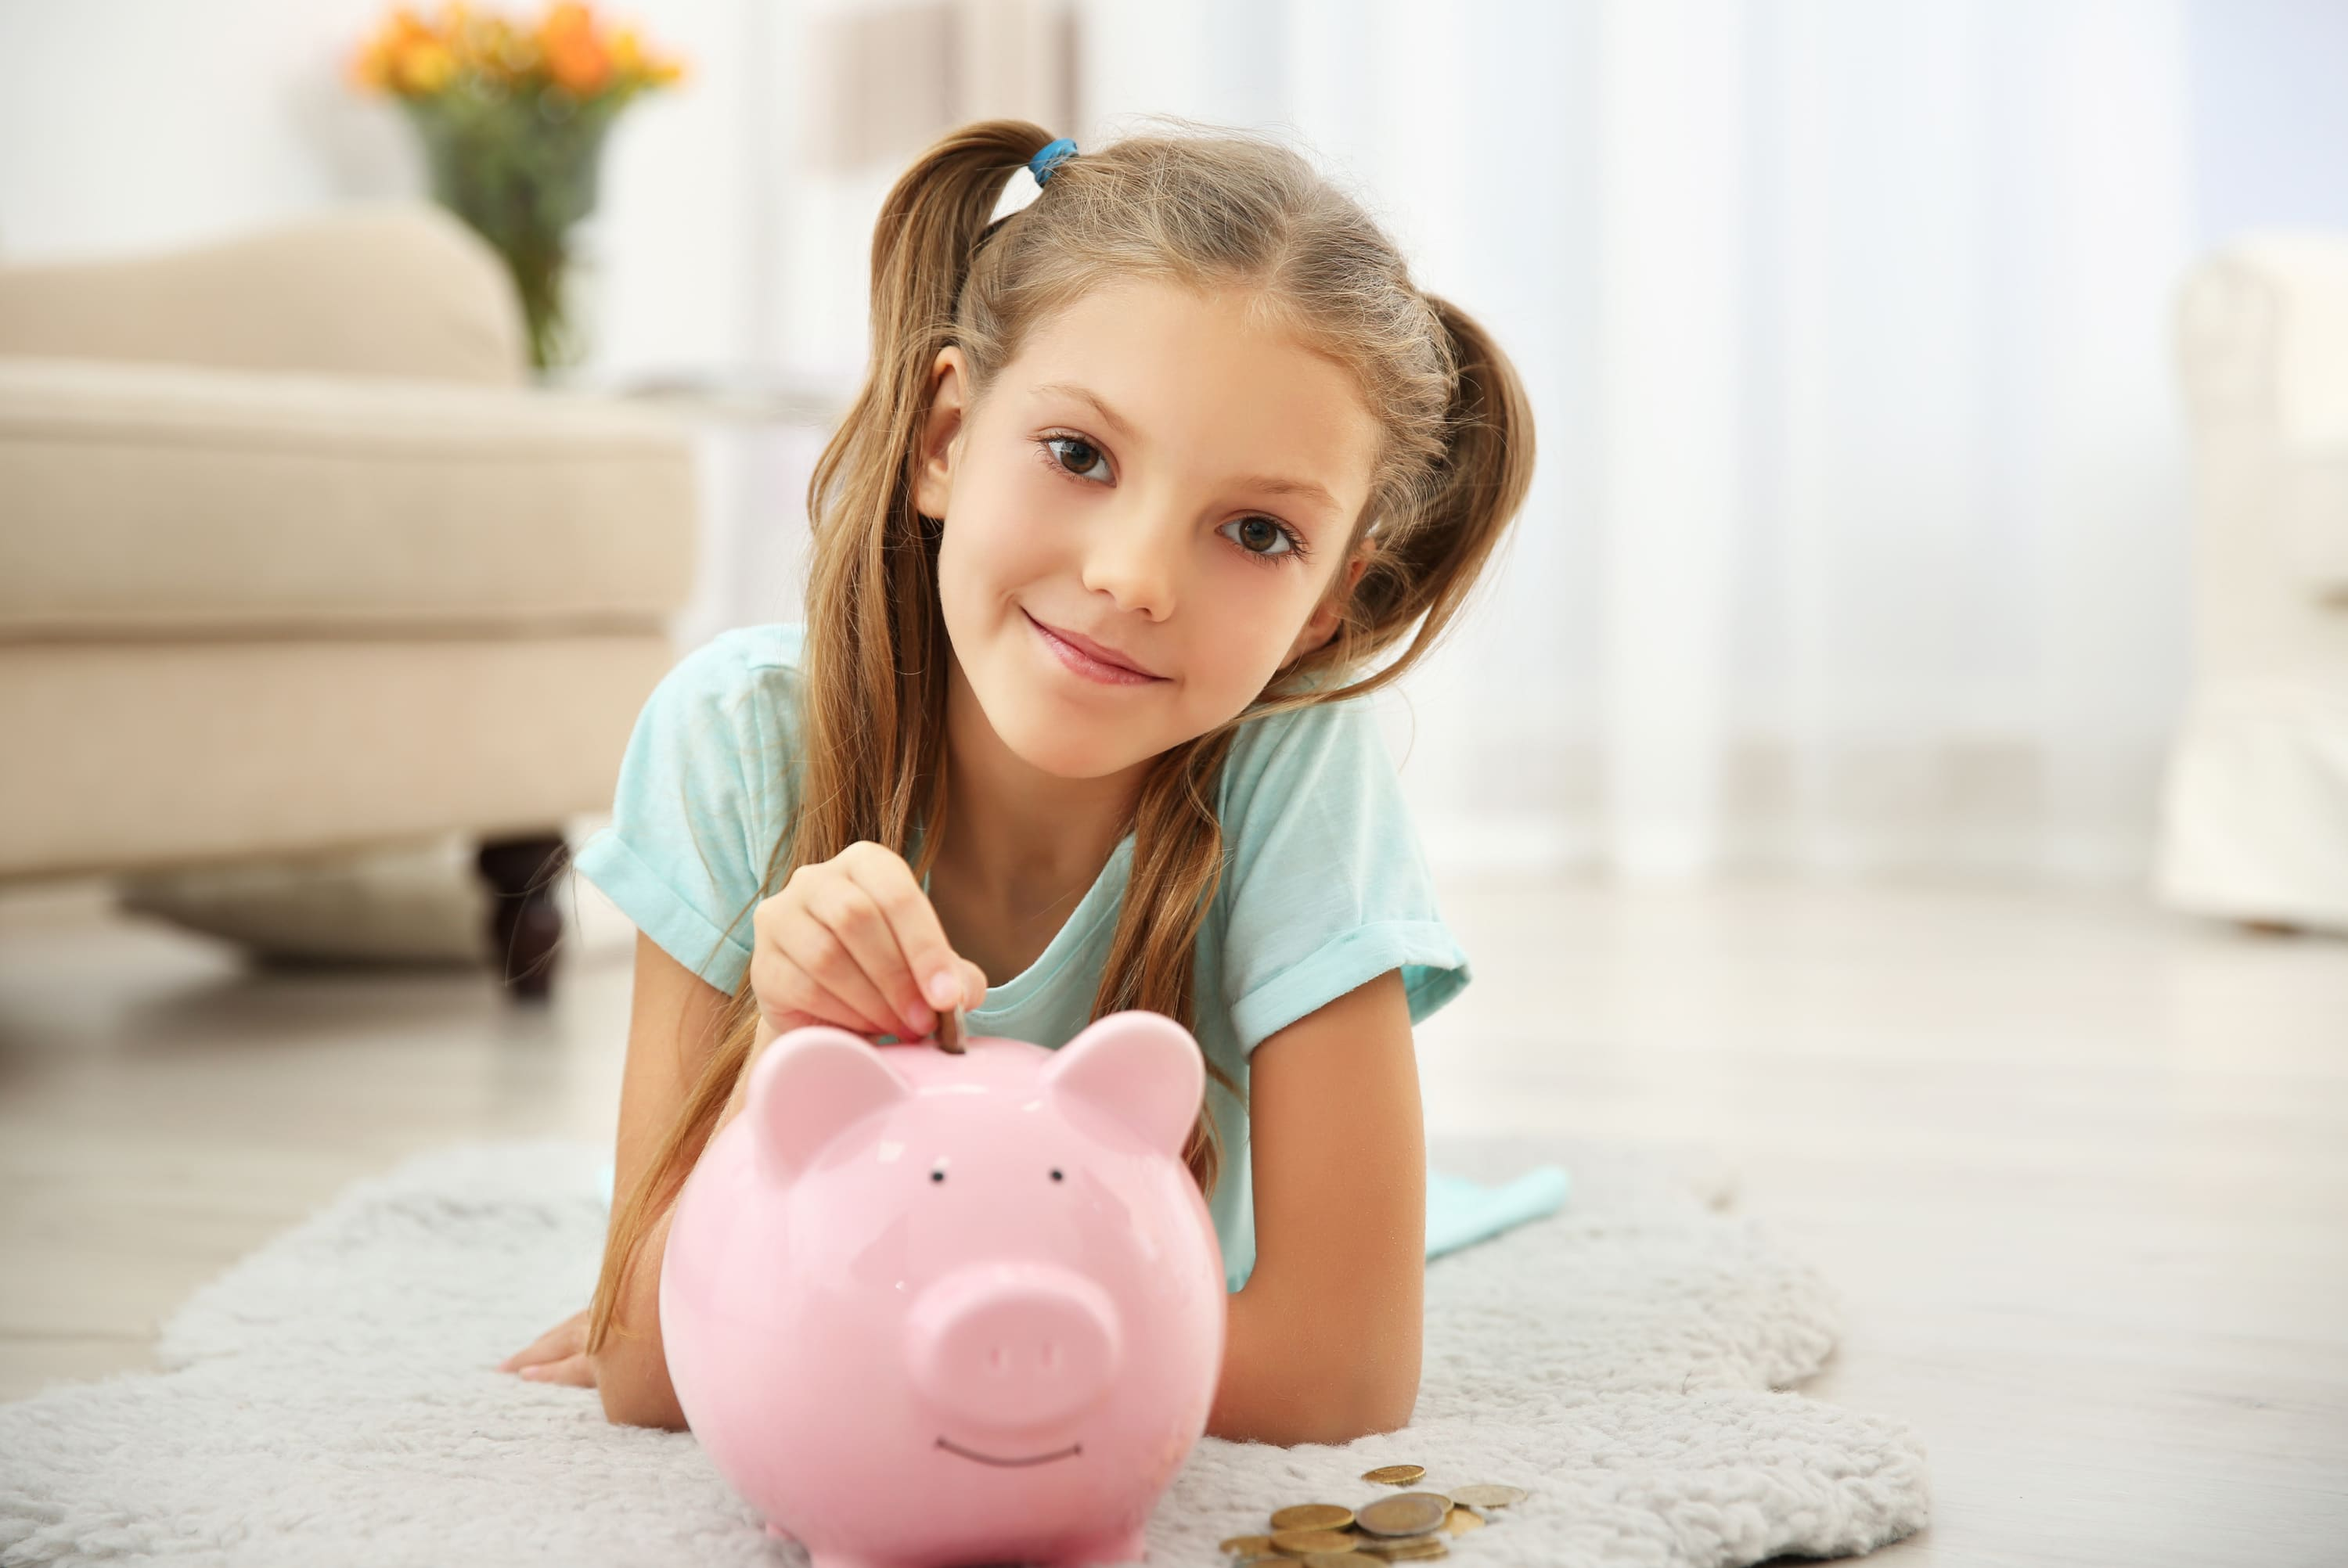 19 Ways To Teach Kids How To Save Money Responsibly At Any Age